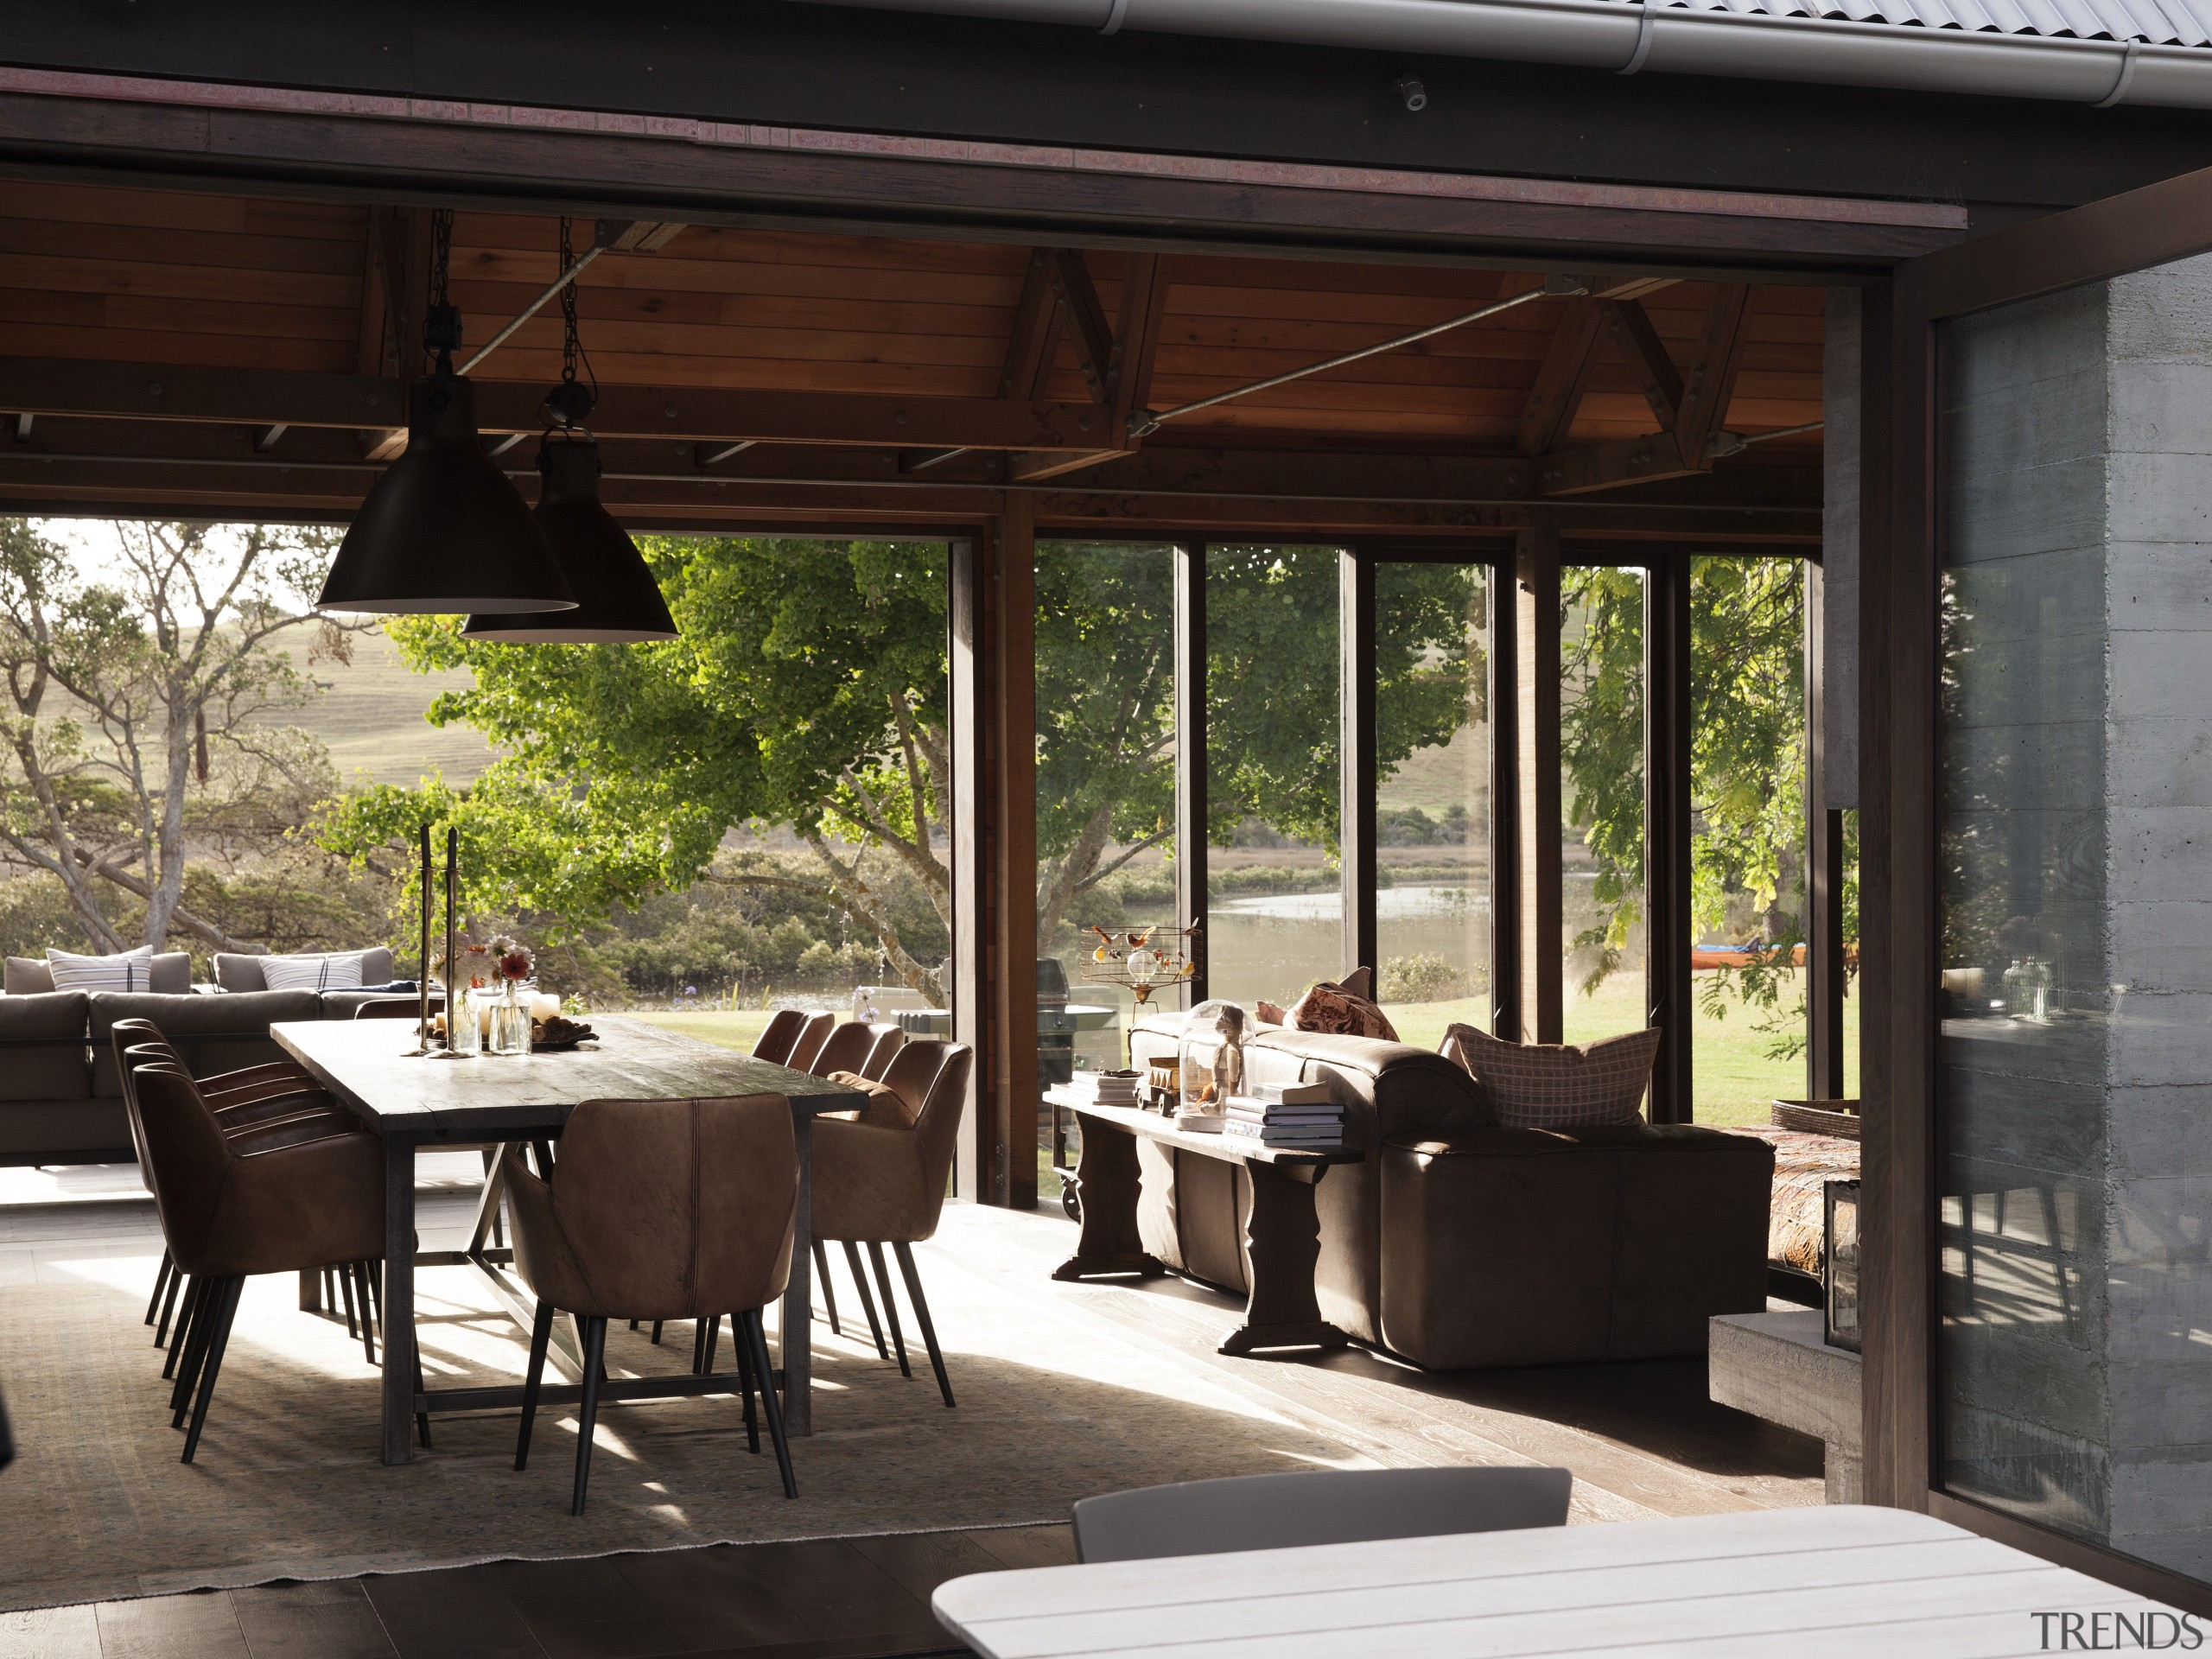 Various wood species and architectural construction elements feature house, interior design, outdoor structure, window, black